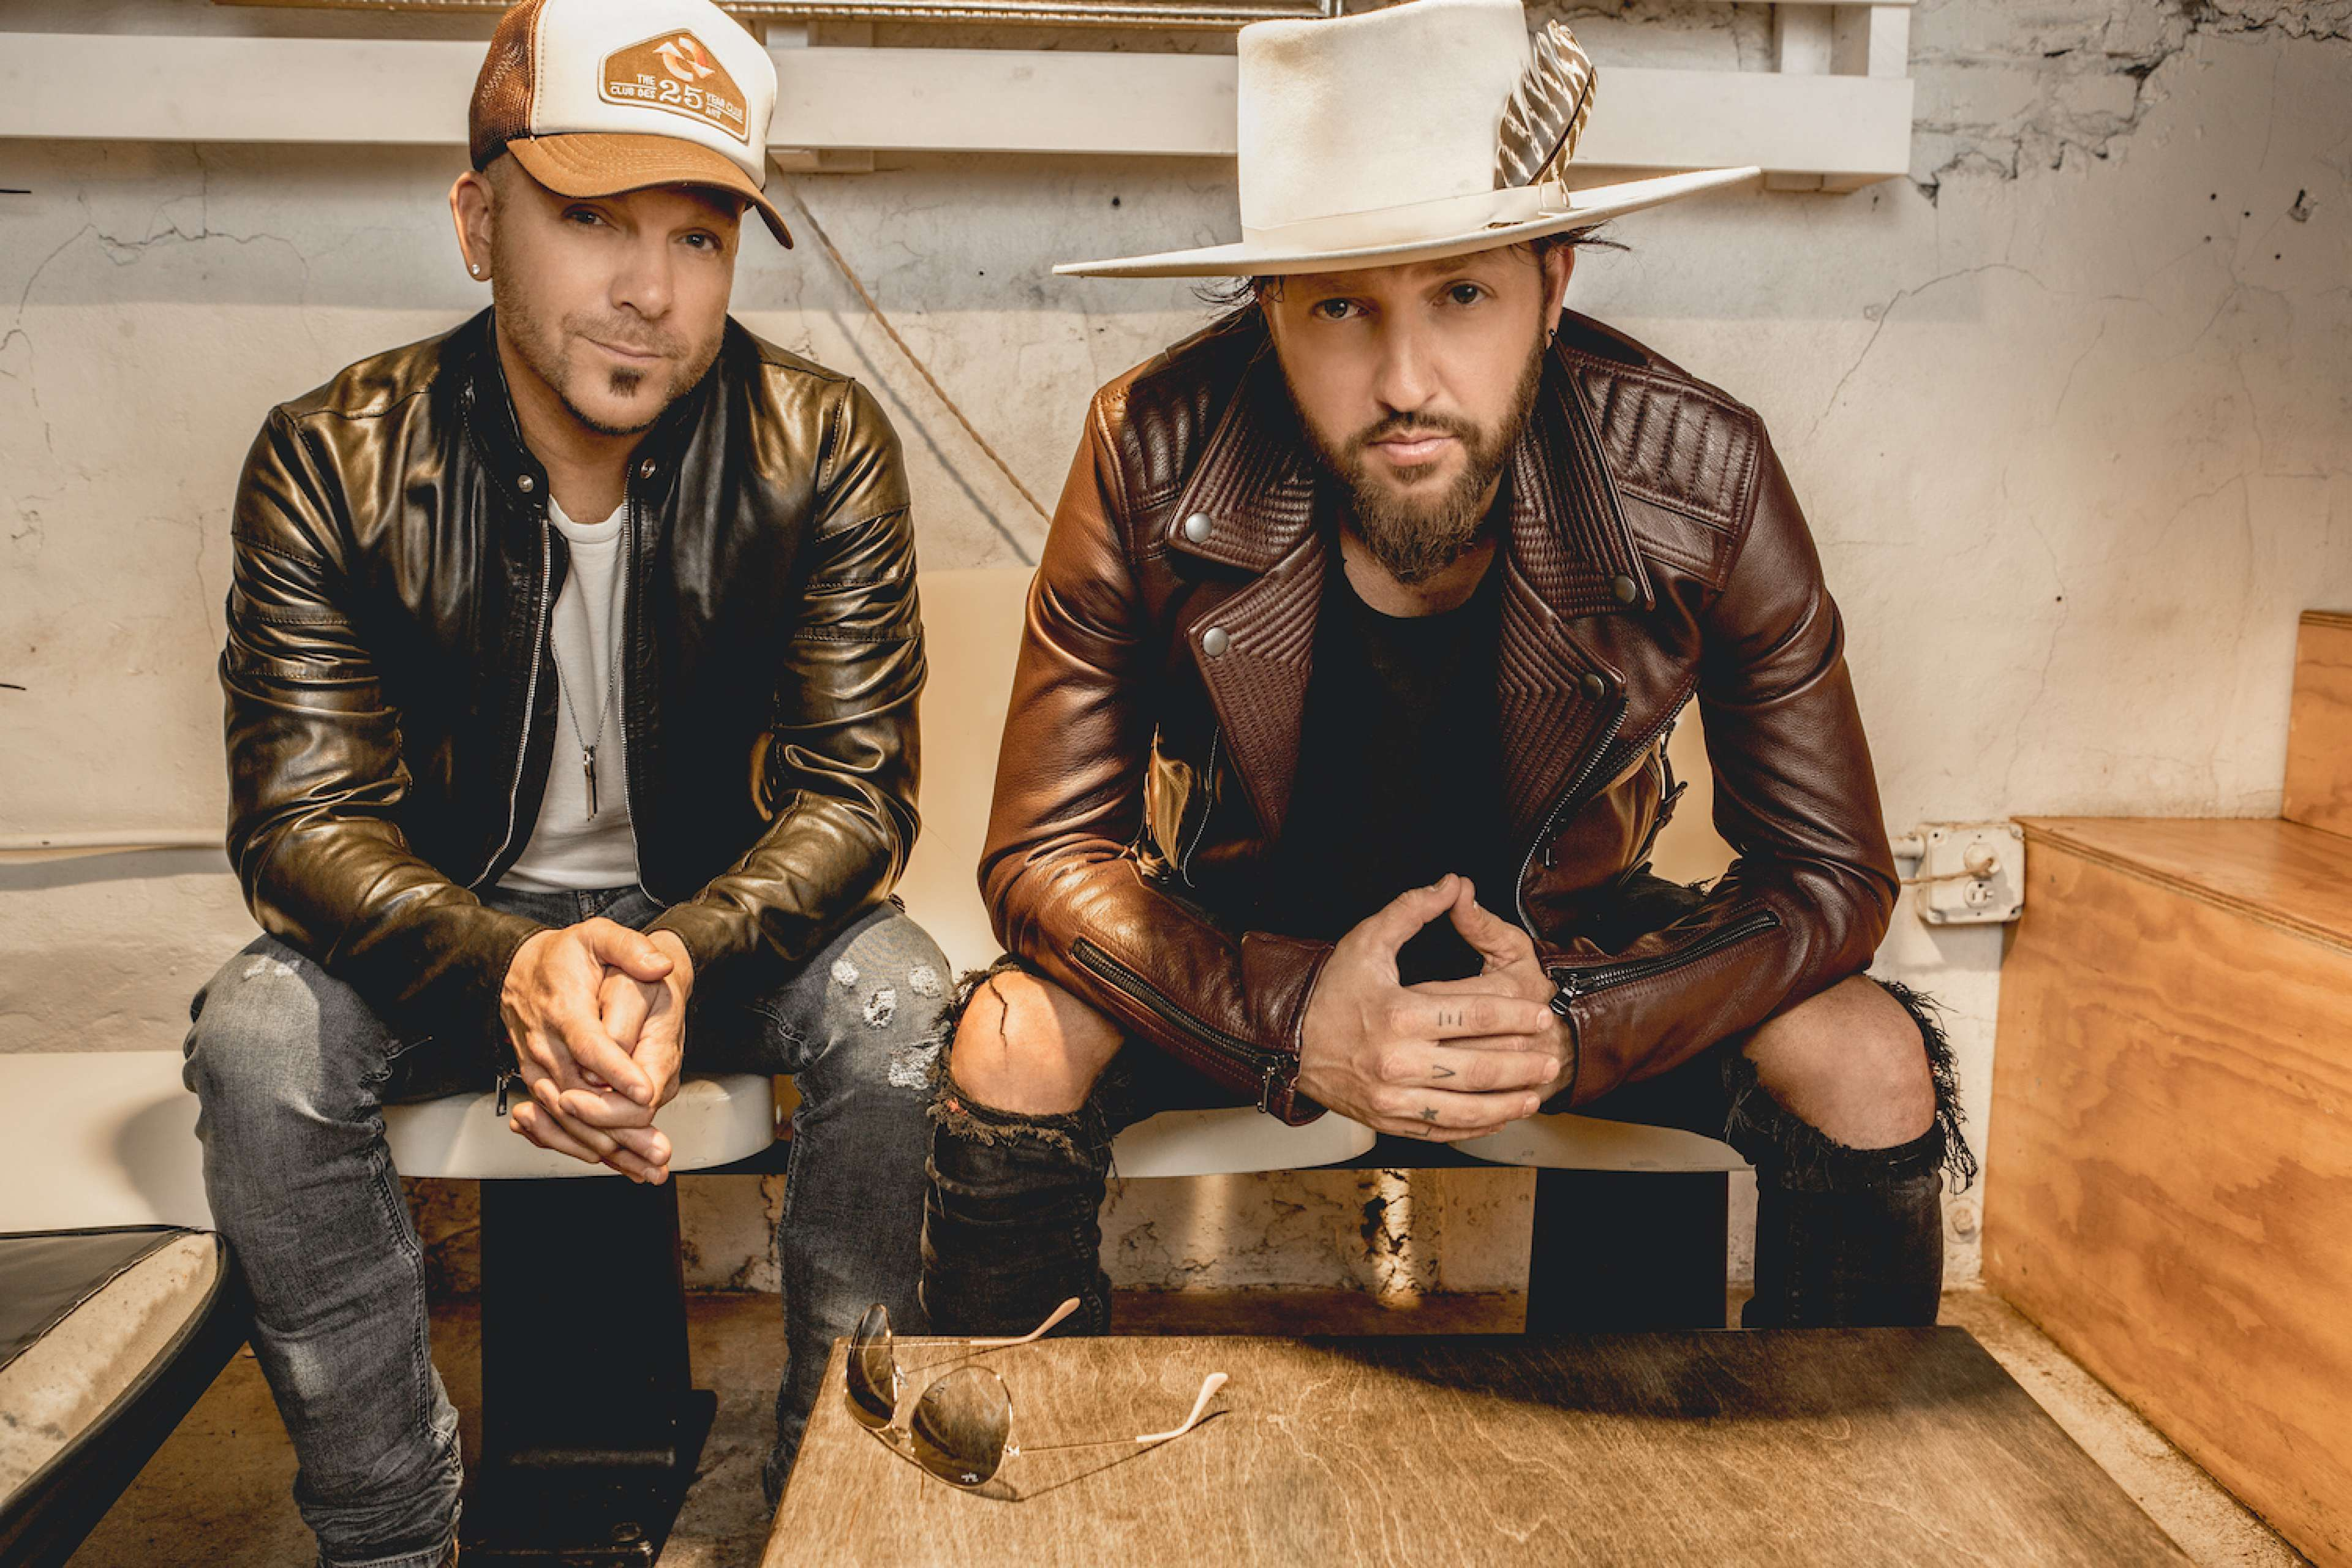 LOCASH Hits #3 On National Country Airplay Charts